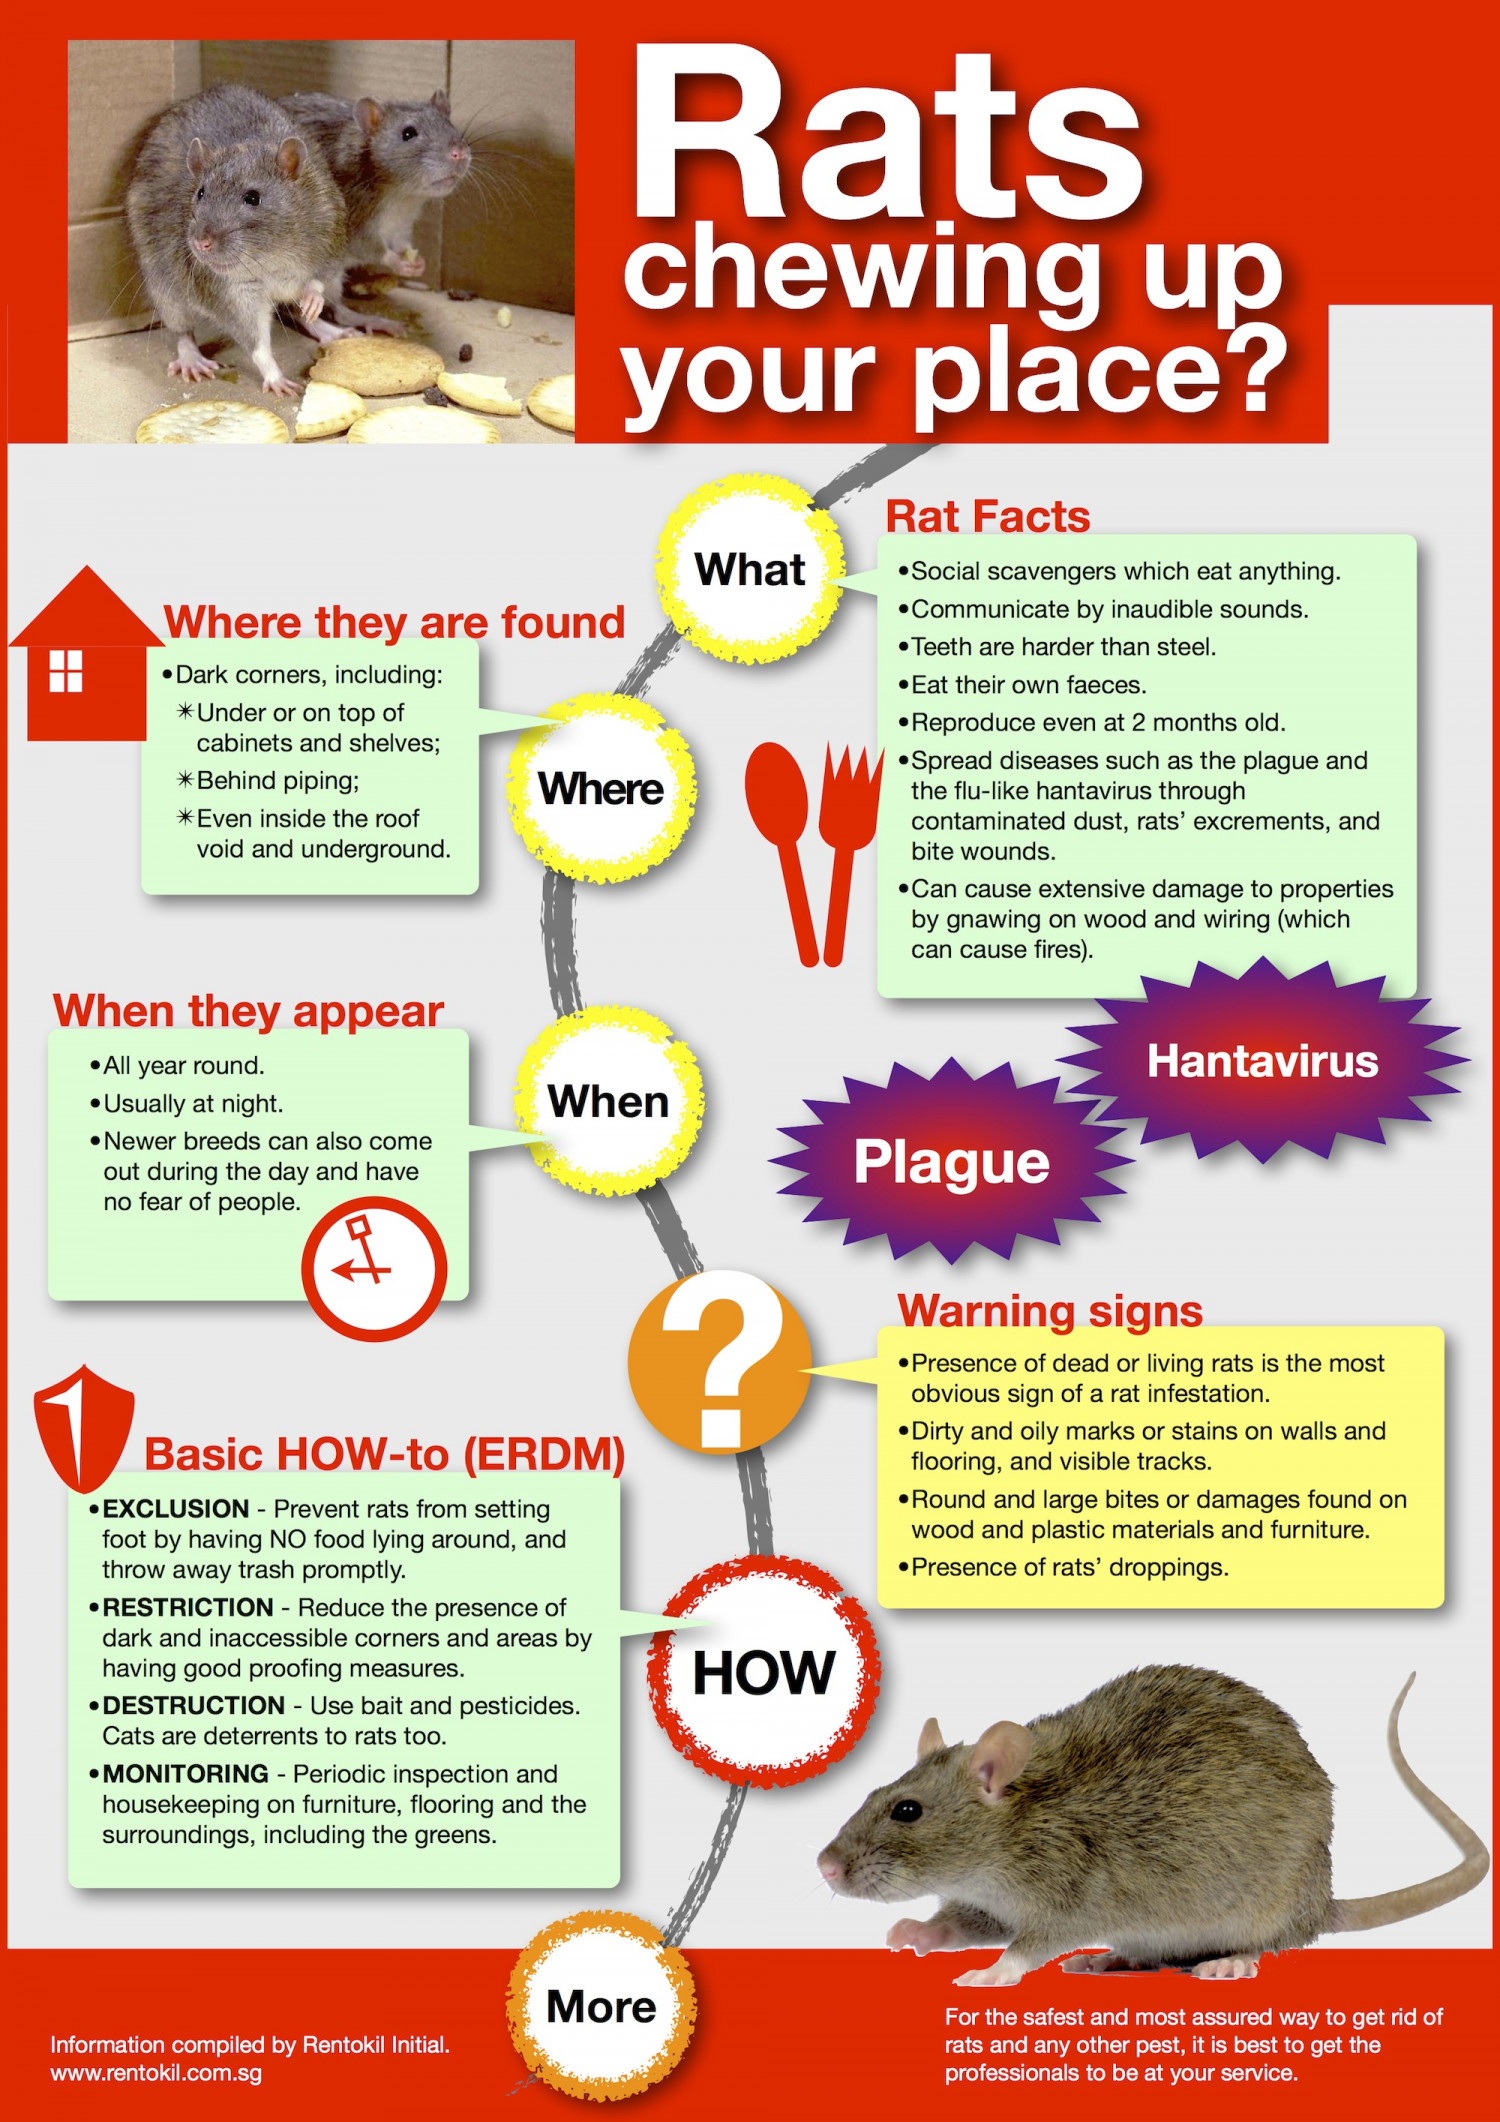 Rats chewing up your place? Infographic